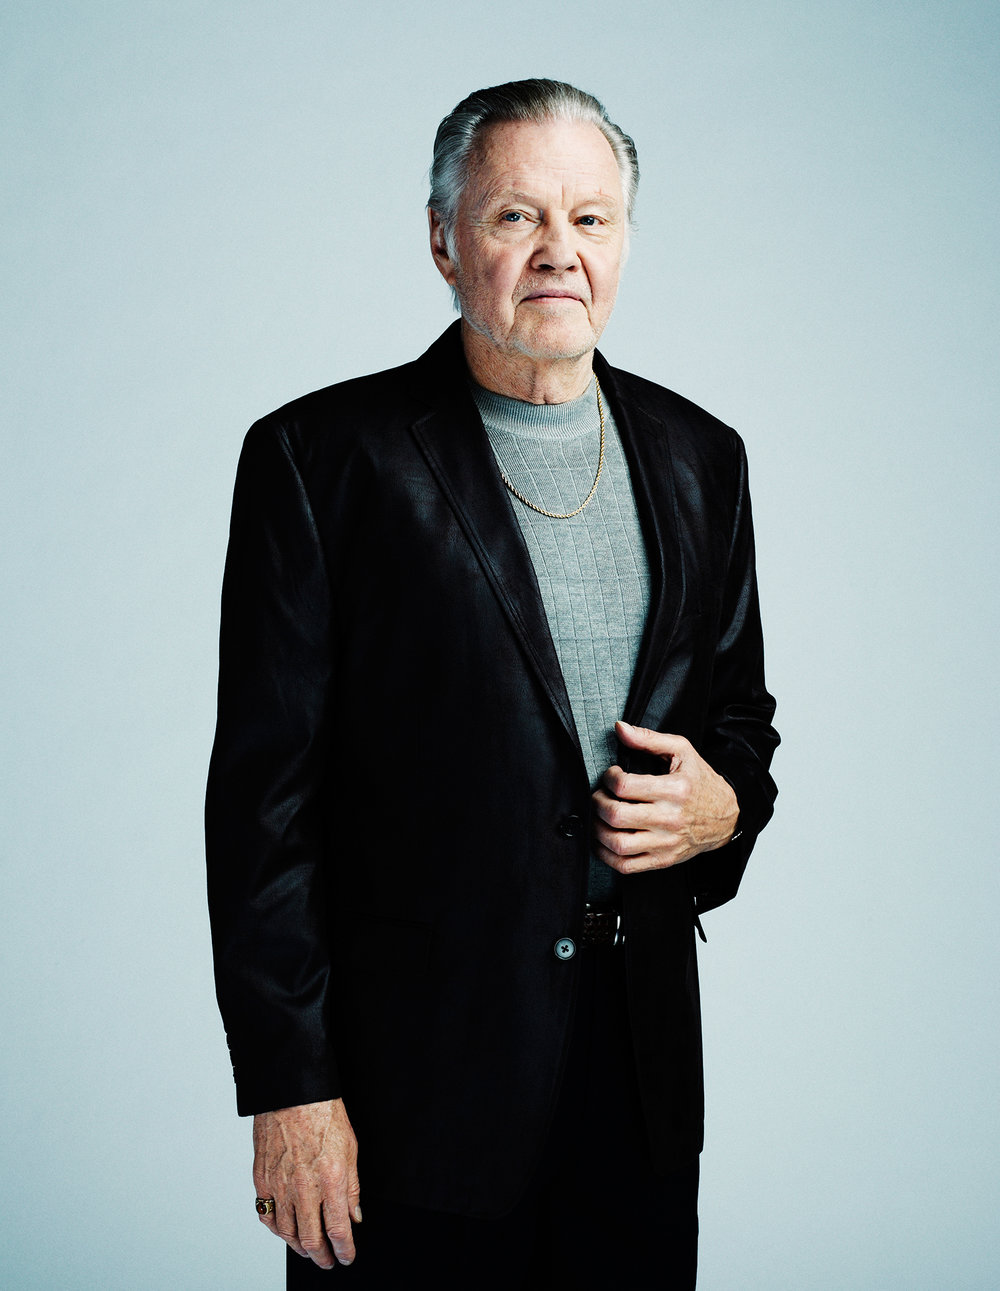 Jon_Voight_GALLERYMICKEY_101.jpg